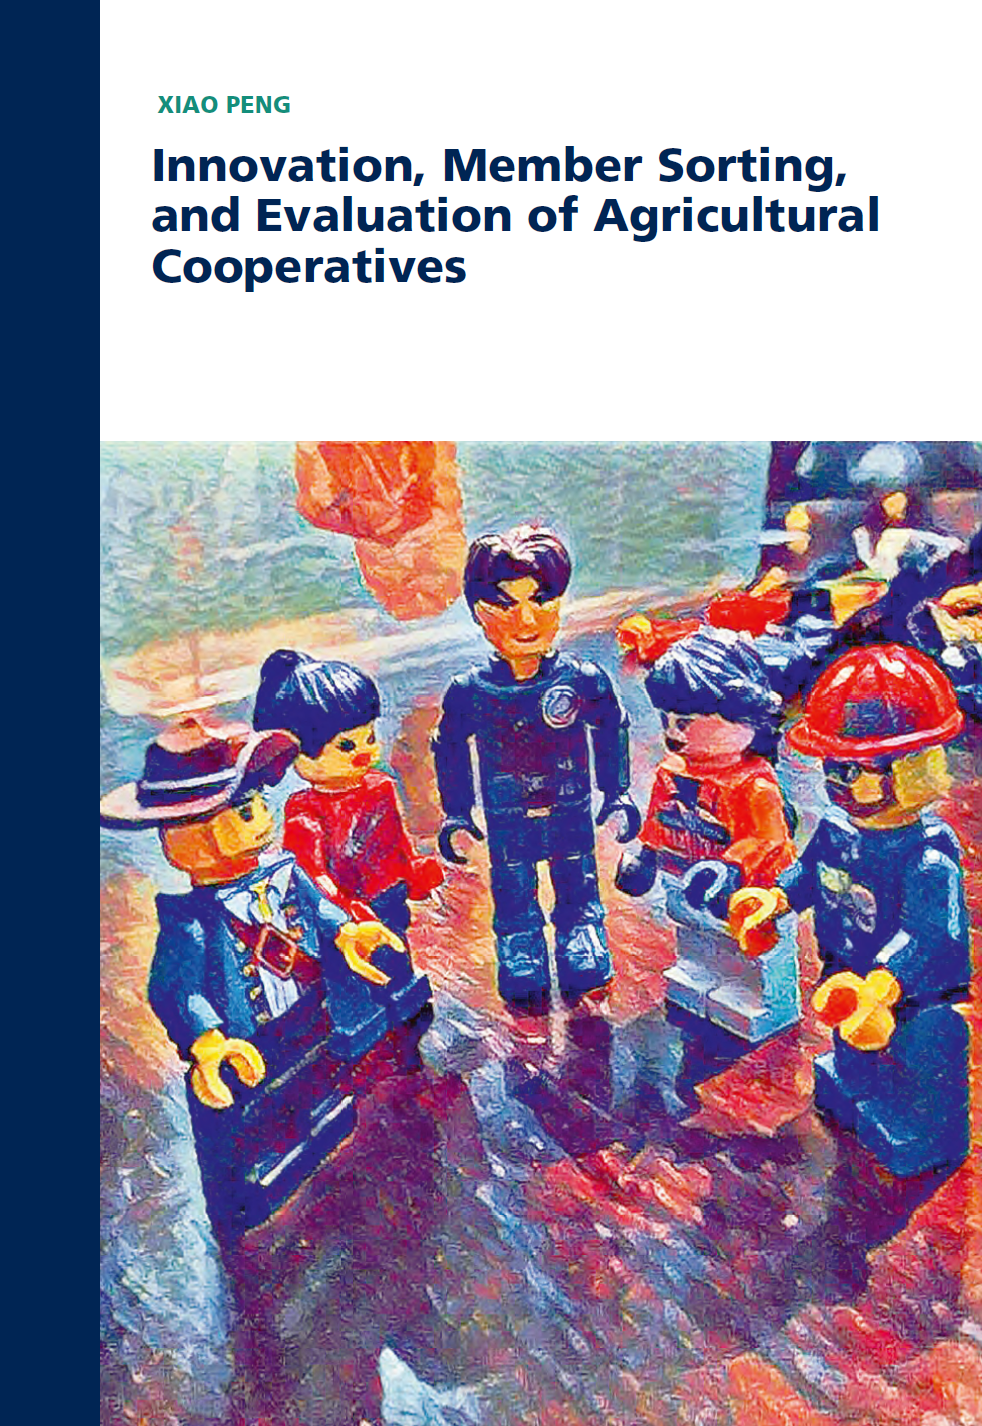 Innovation, member sorting, and evaluation of agricultural cooperatives